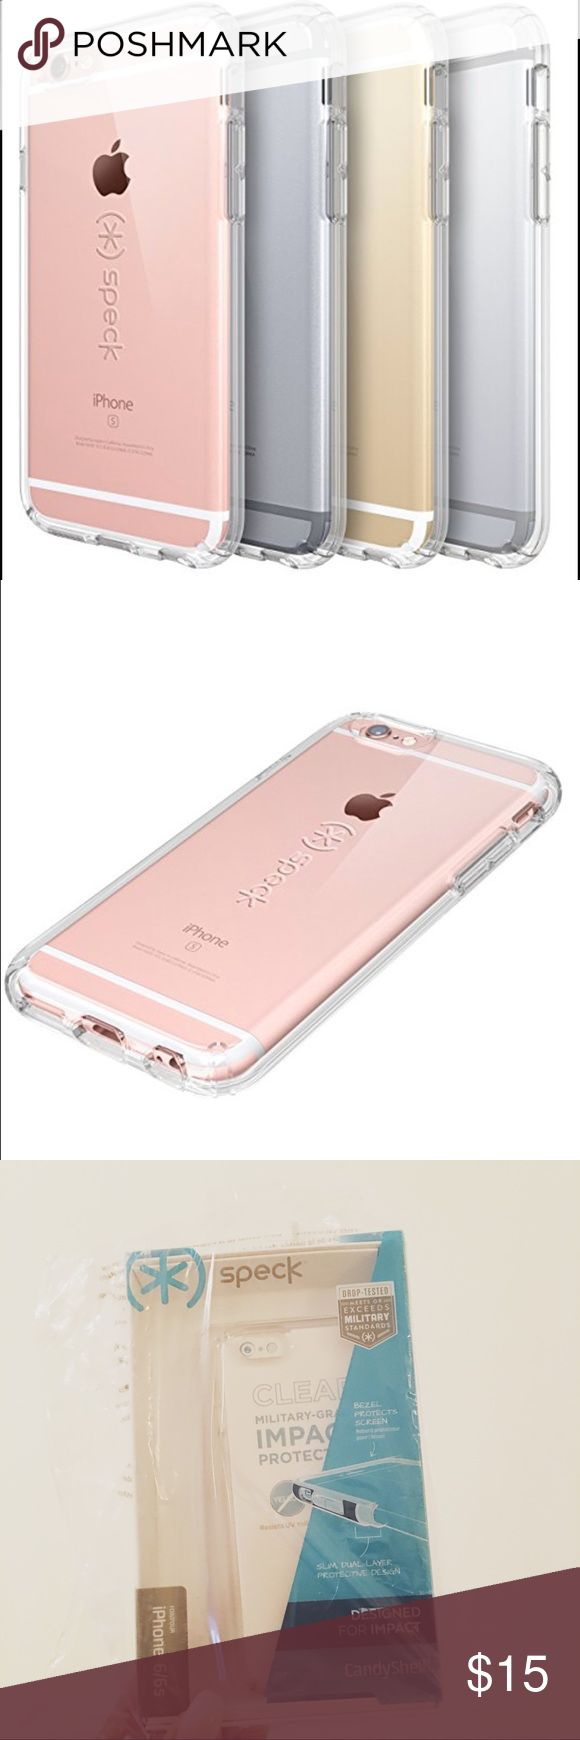 Speck CandyShell Clear iPhone 6/6s Case * Military-grade protection. Meets or exceeds MIL-STD-810G drop tested standards. * Dual-layer design. Exterior hardshell layer disperses impact while interior layer absorbs shock. * Raised bezel. Impact protection from face drops and protects screen when lying face-down on a table or dashboard. * Stays clear. Completely clear design resists yellowing over time. * High-definition clarity. Two layers of innovative materials achieve an HD clarity that…